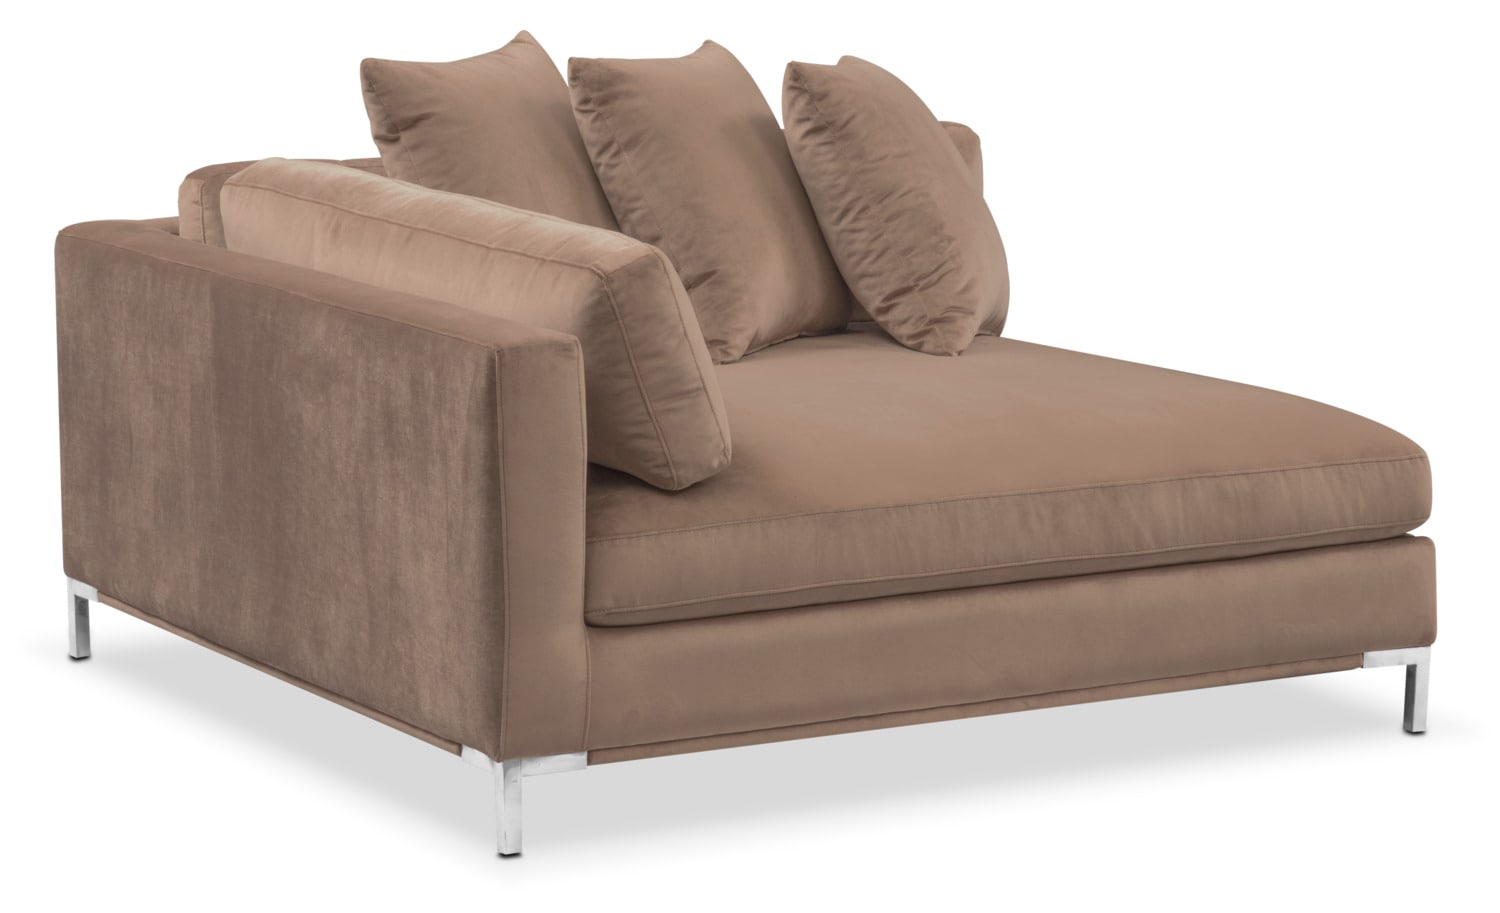 Moda Corner Sofa | Value City Furniture and Mattresses